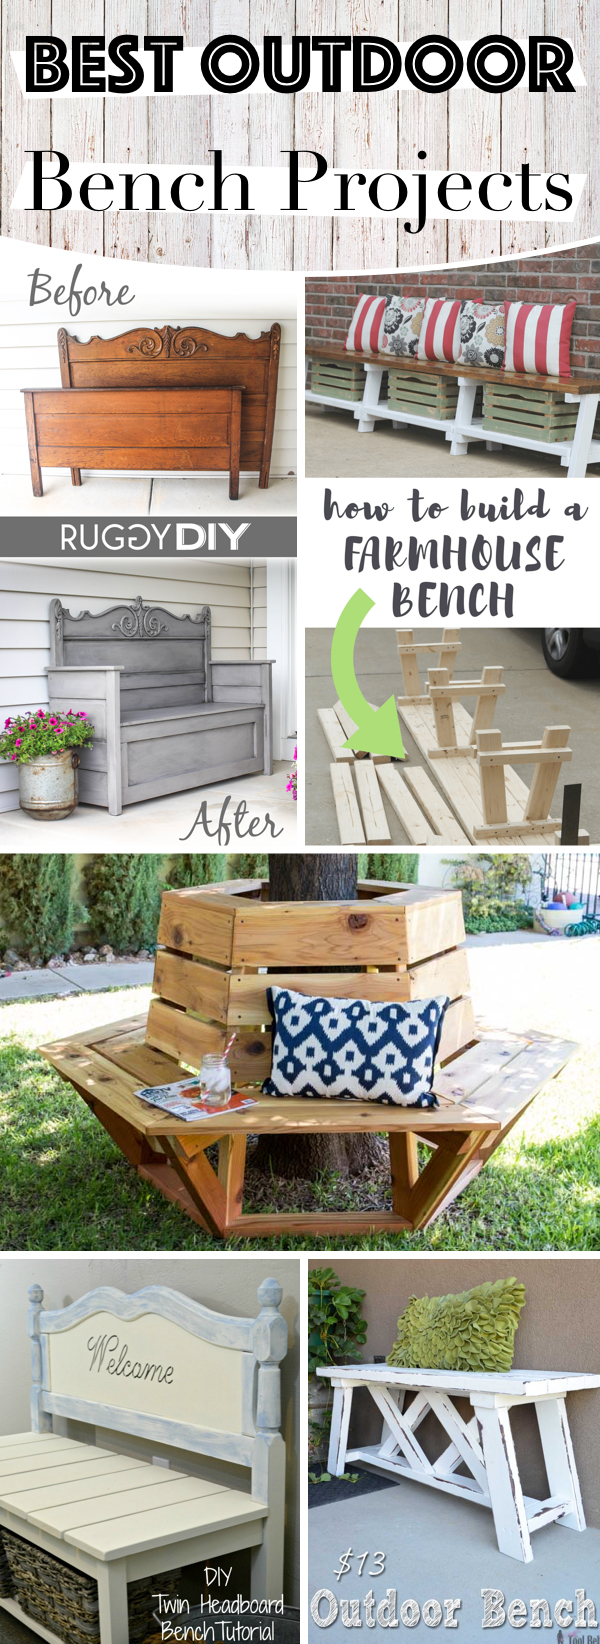 Outdoor Bench Projects